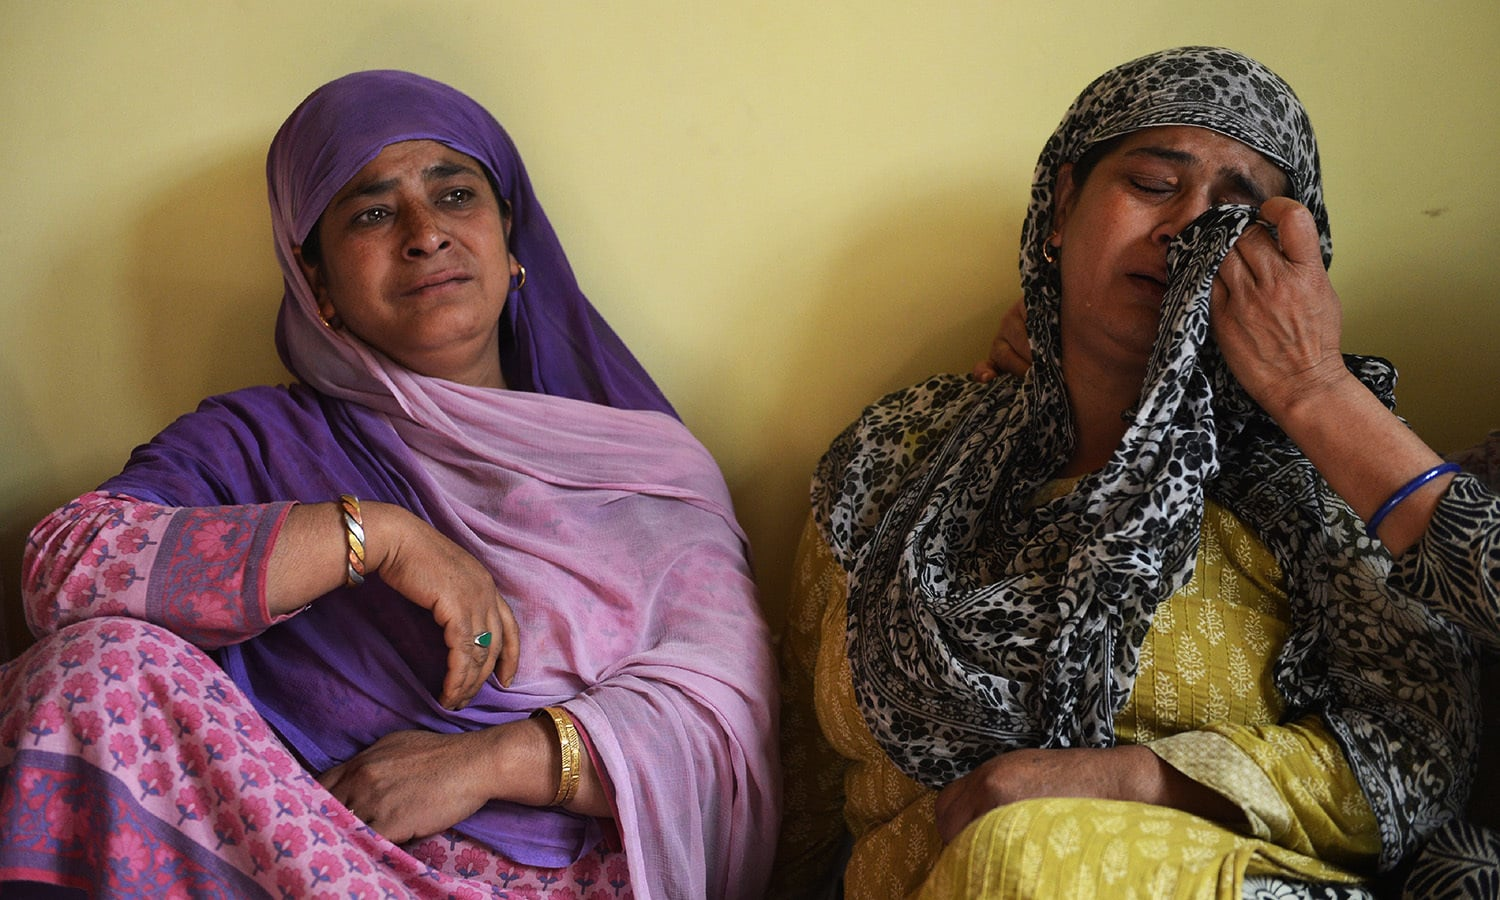 In this picture taken on September 12, 2016, Amina Shah (L) and Shaheena Shah (R), sisters of Reyaz Ahmed Shah, mourn the death of their younger brother at their house in Srinagar on the eve of Eid. ─ AFP